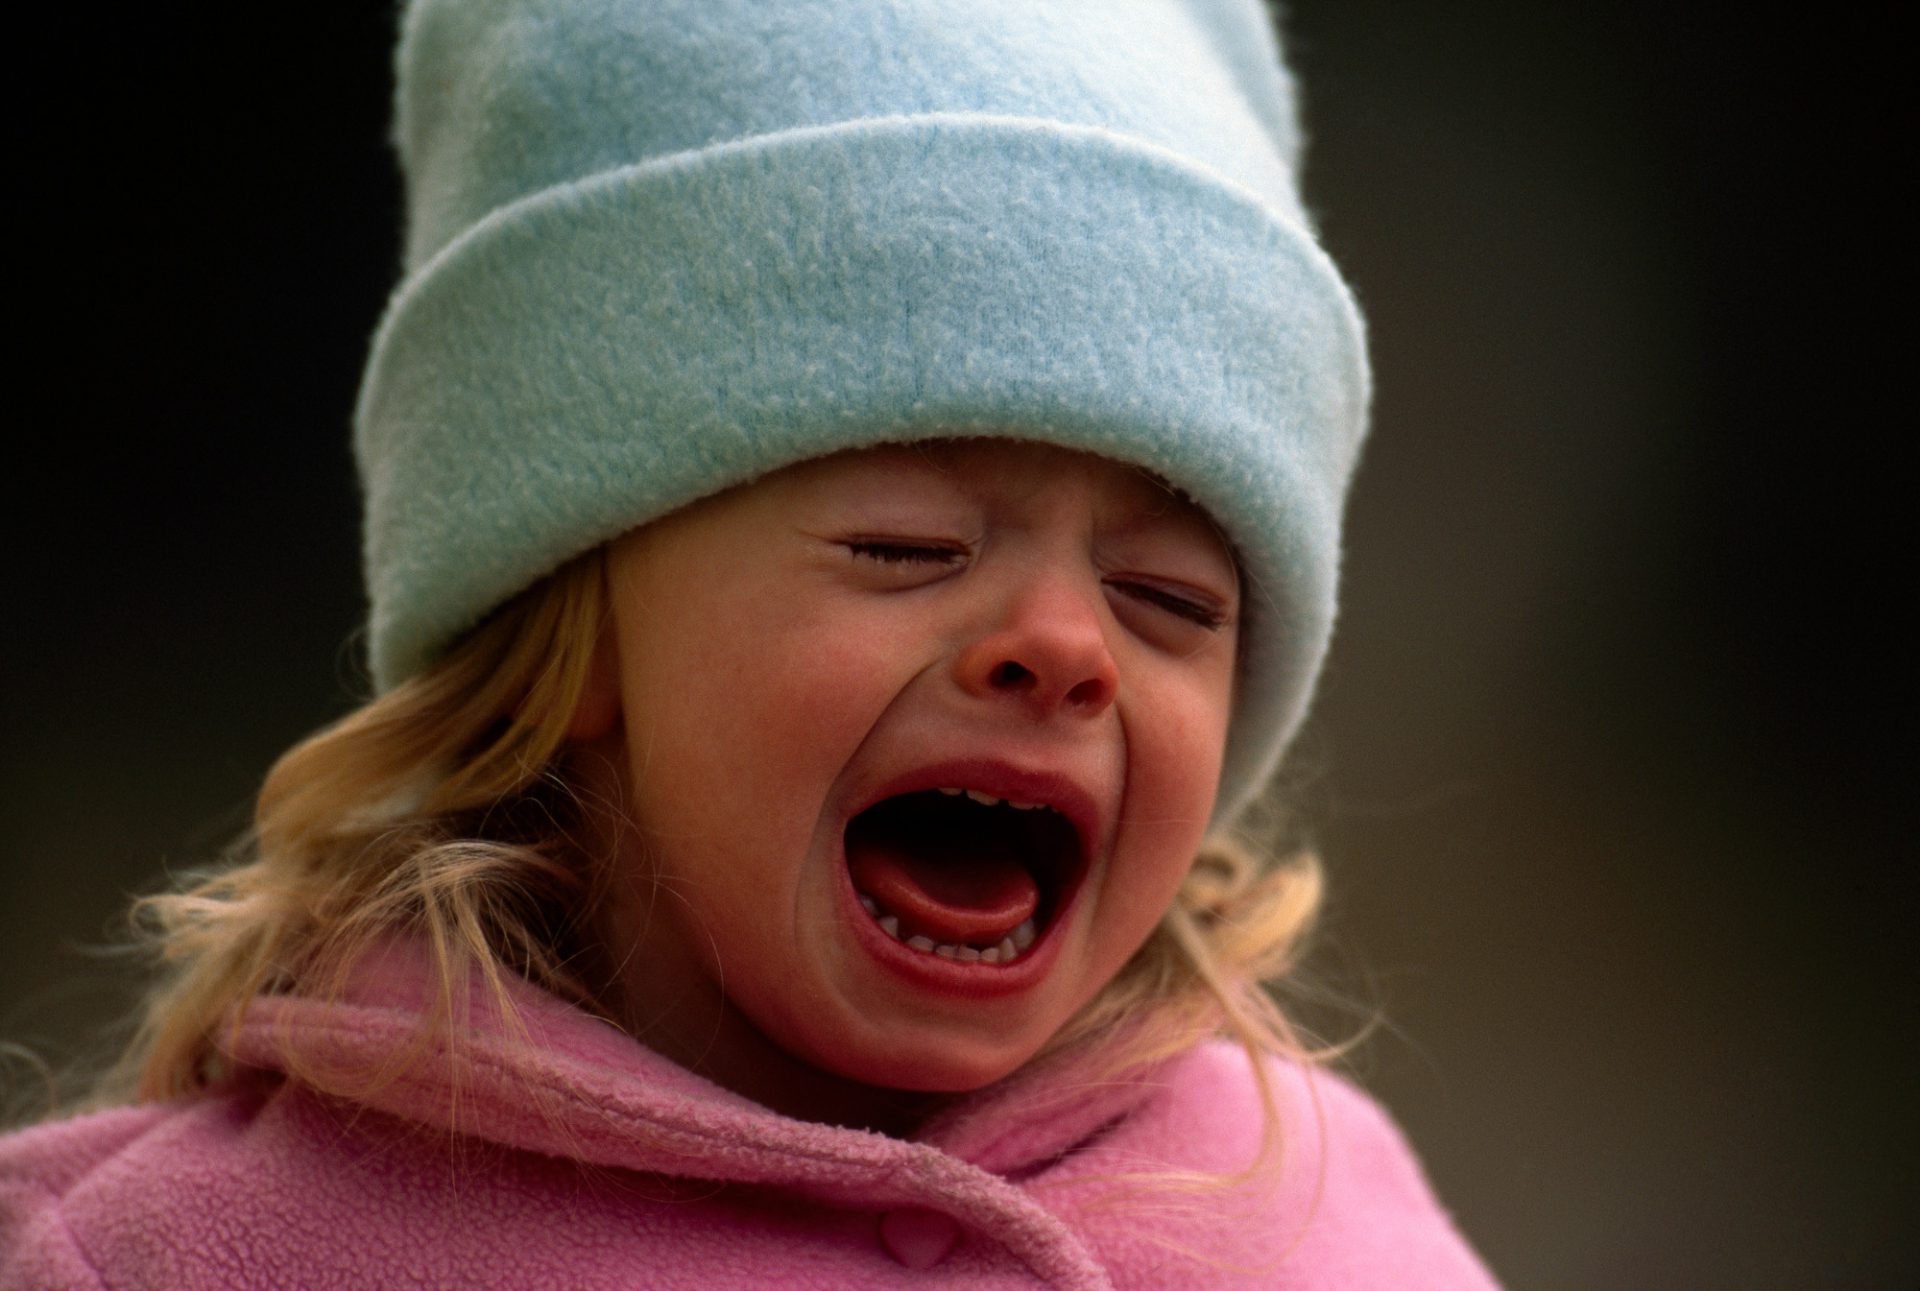 Photo: A young girl in winter clothing, crying.